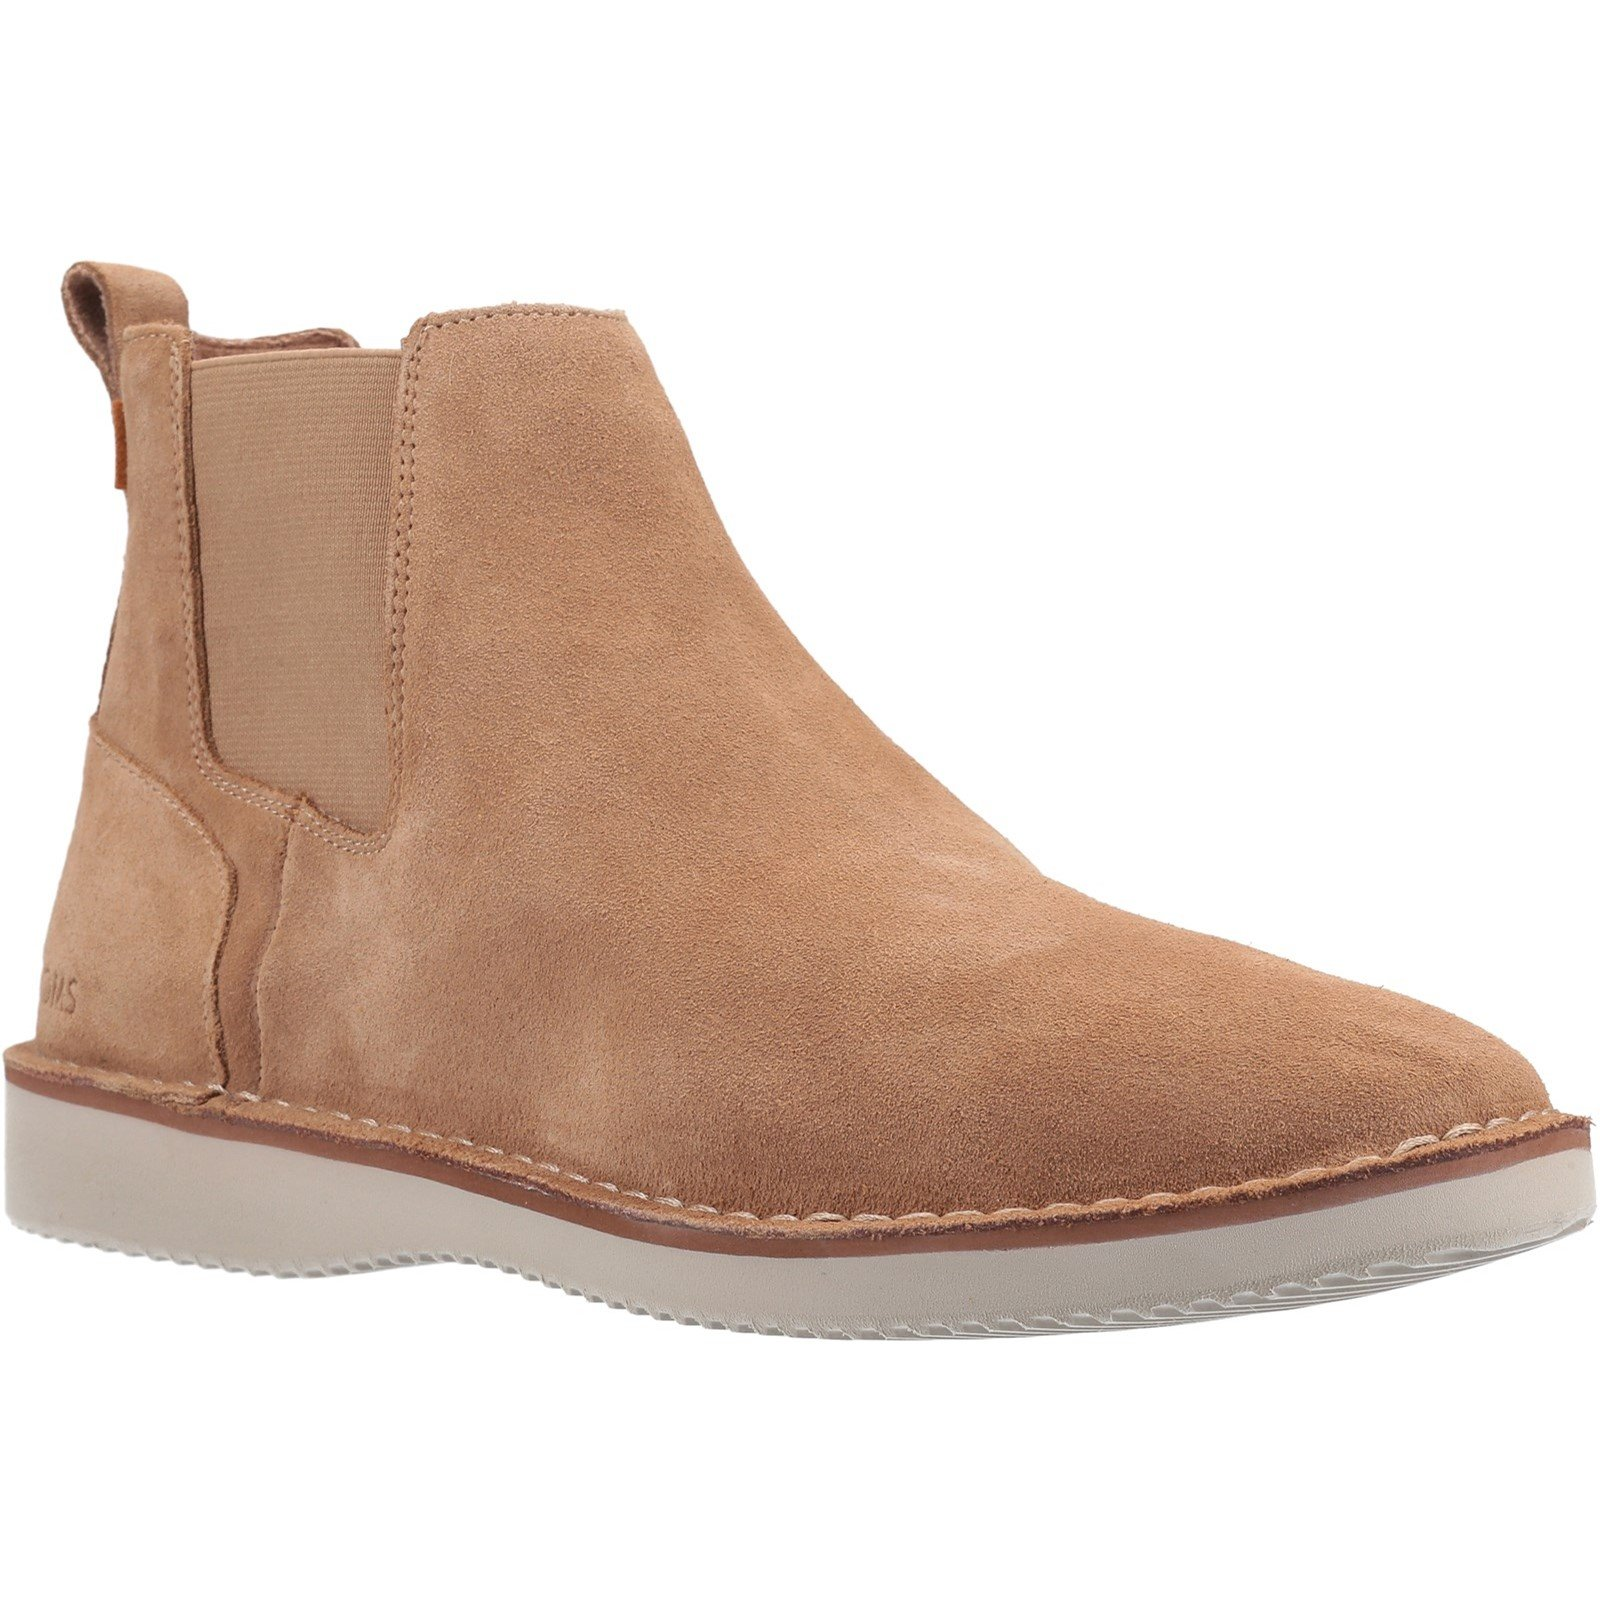 TOMS Men's Skyline Lace Up Boot Toffee 31608 - Toffee 7